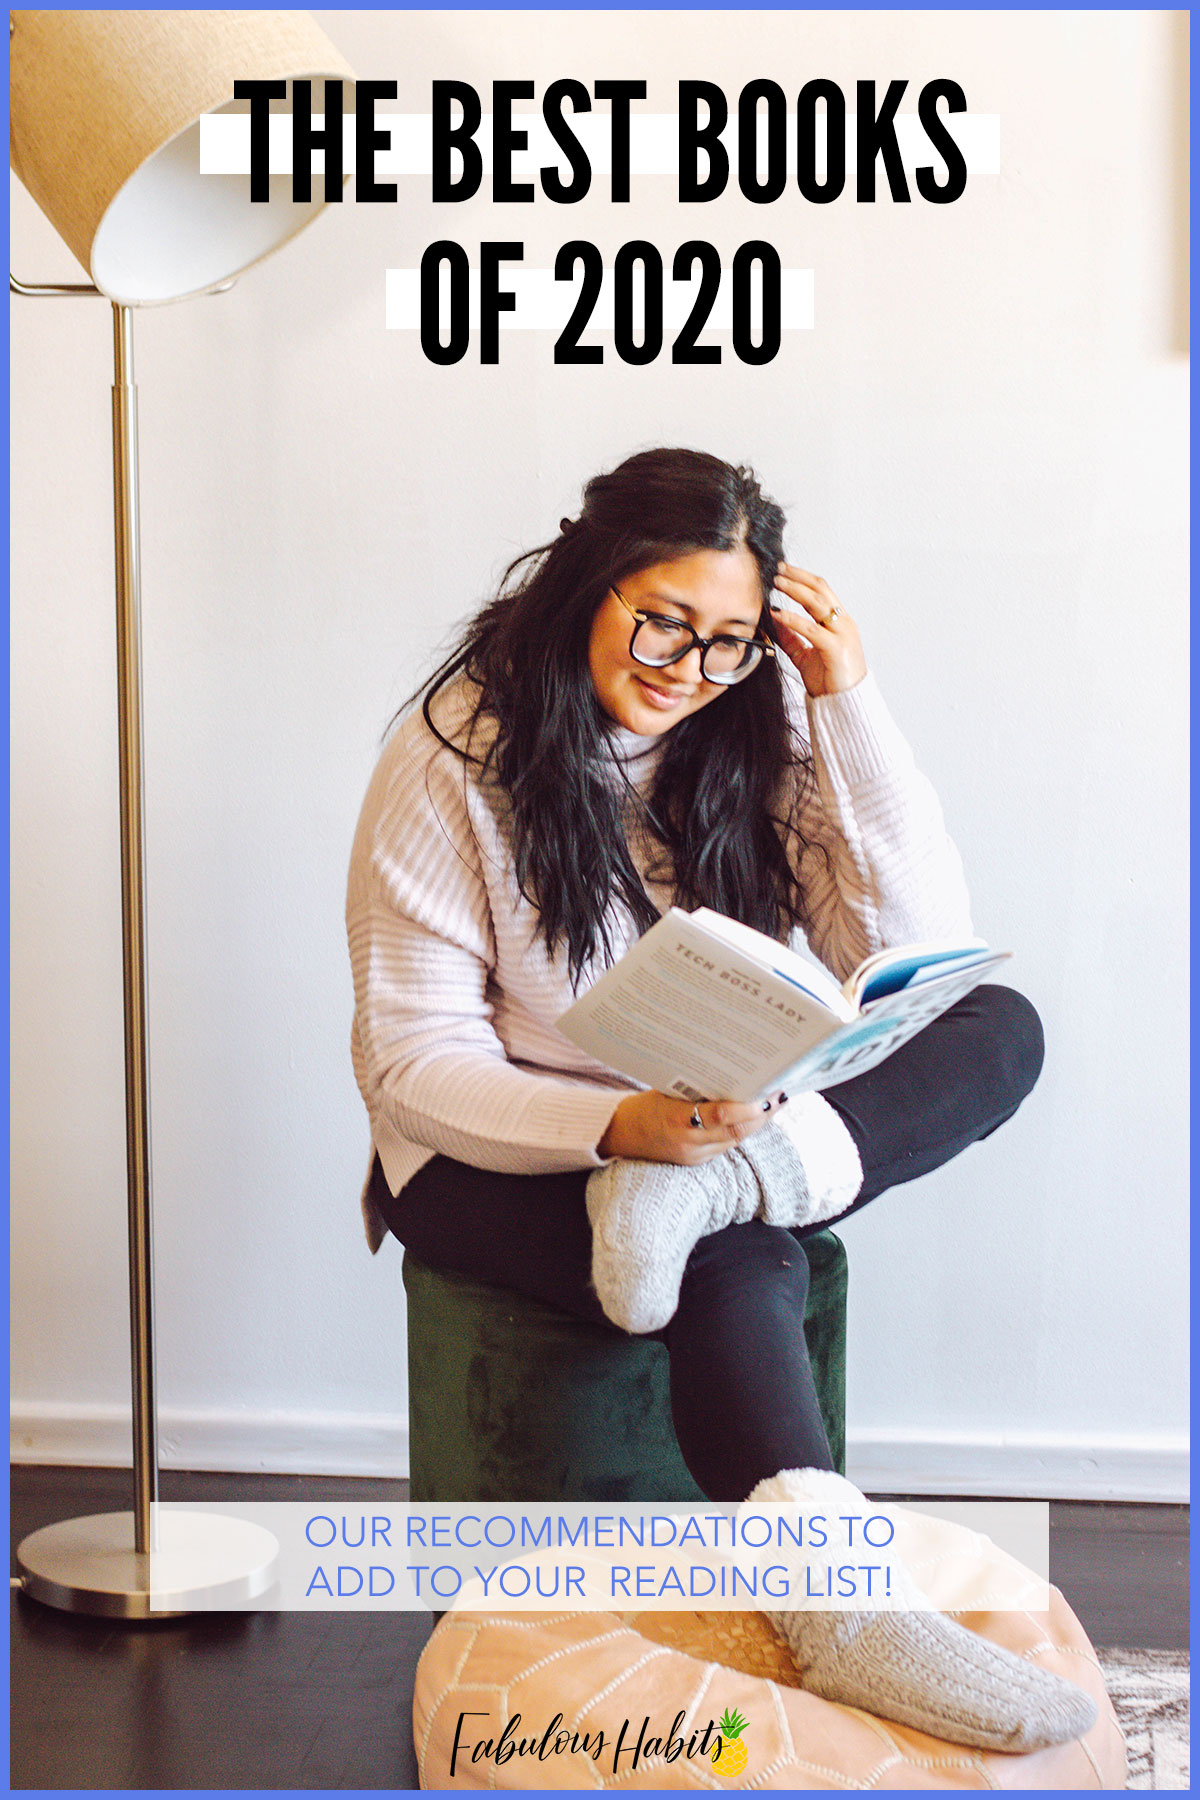 It's finally here! Our list of 2020's best books! We're excited to showcase this year's highly anticipated reads. What'cha waiting for? Time to get lost in a good book (or two!) #bookworm